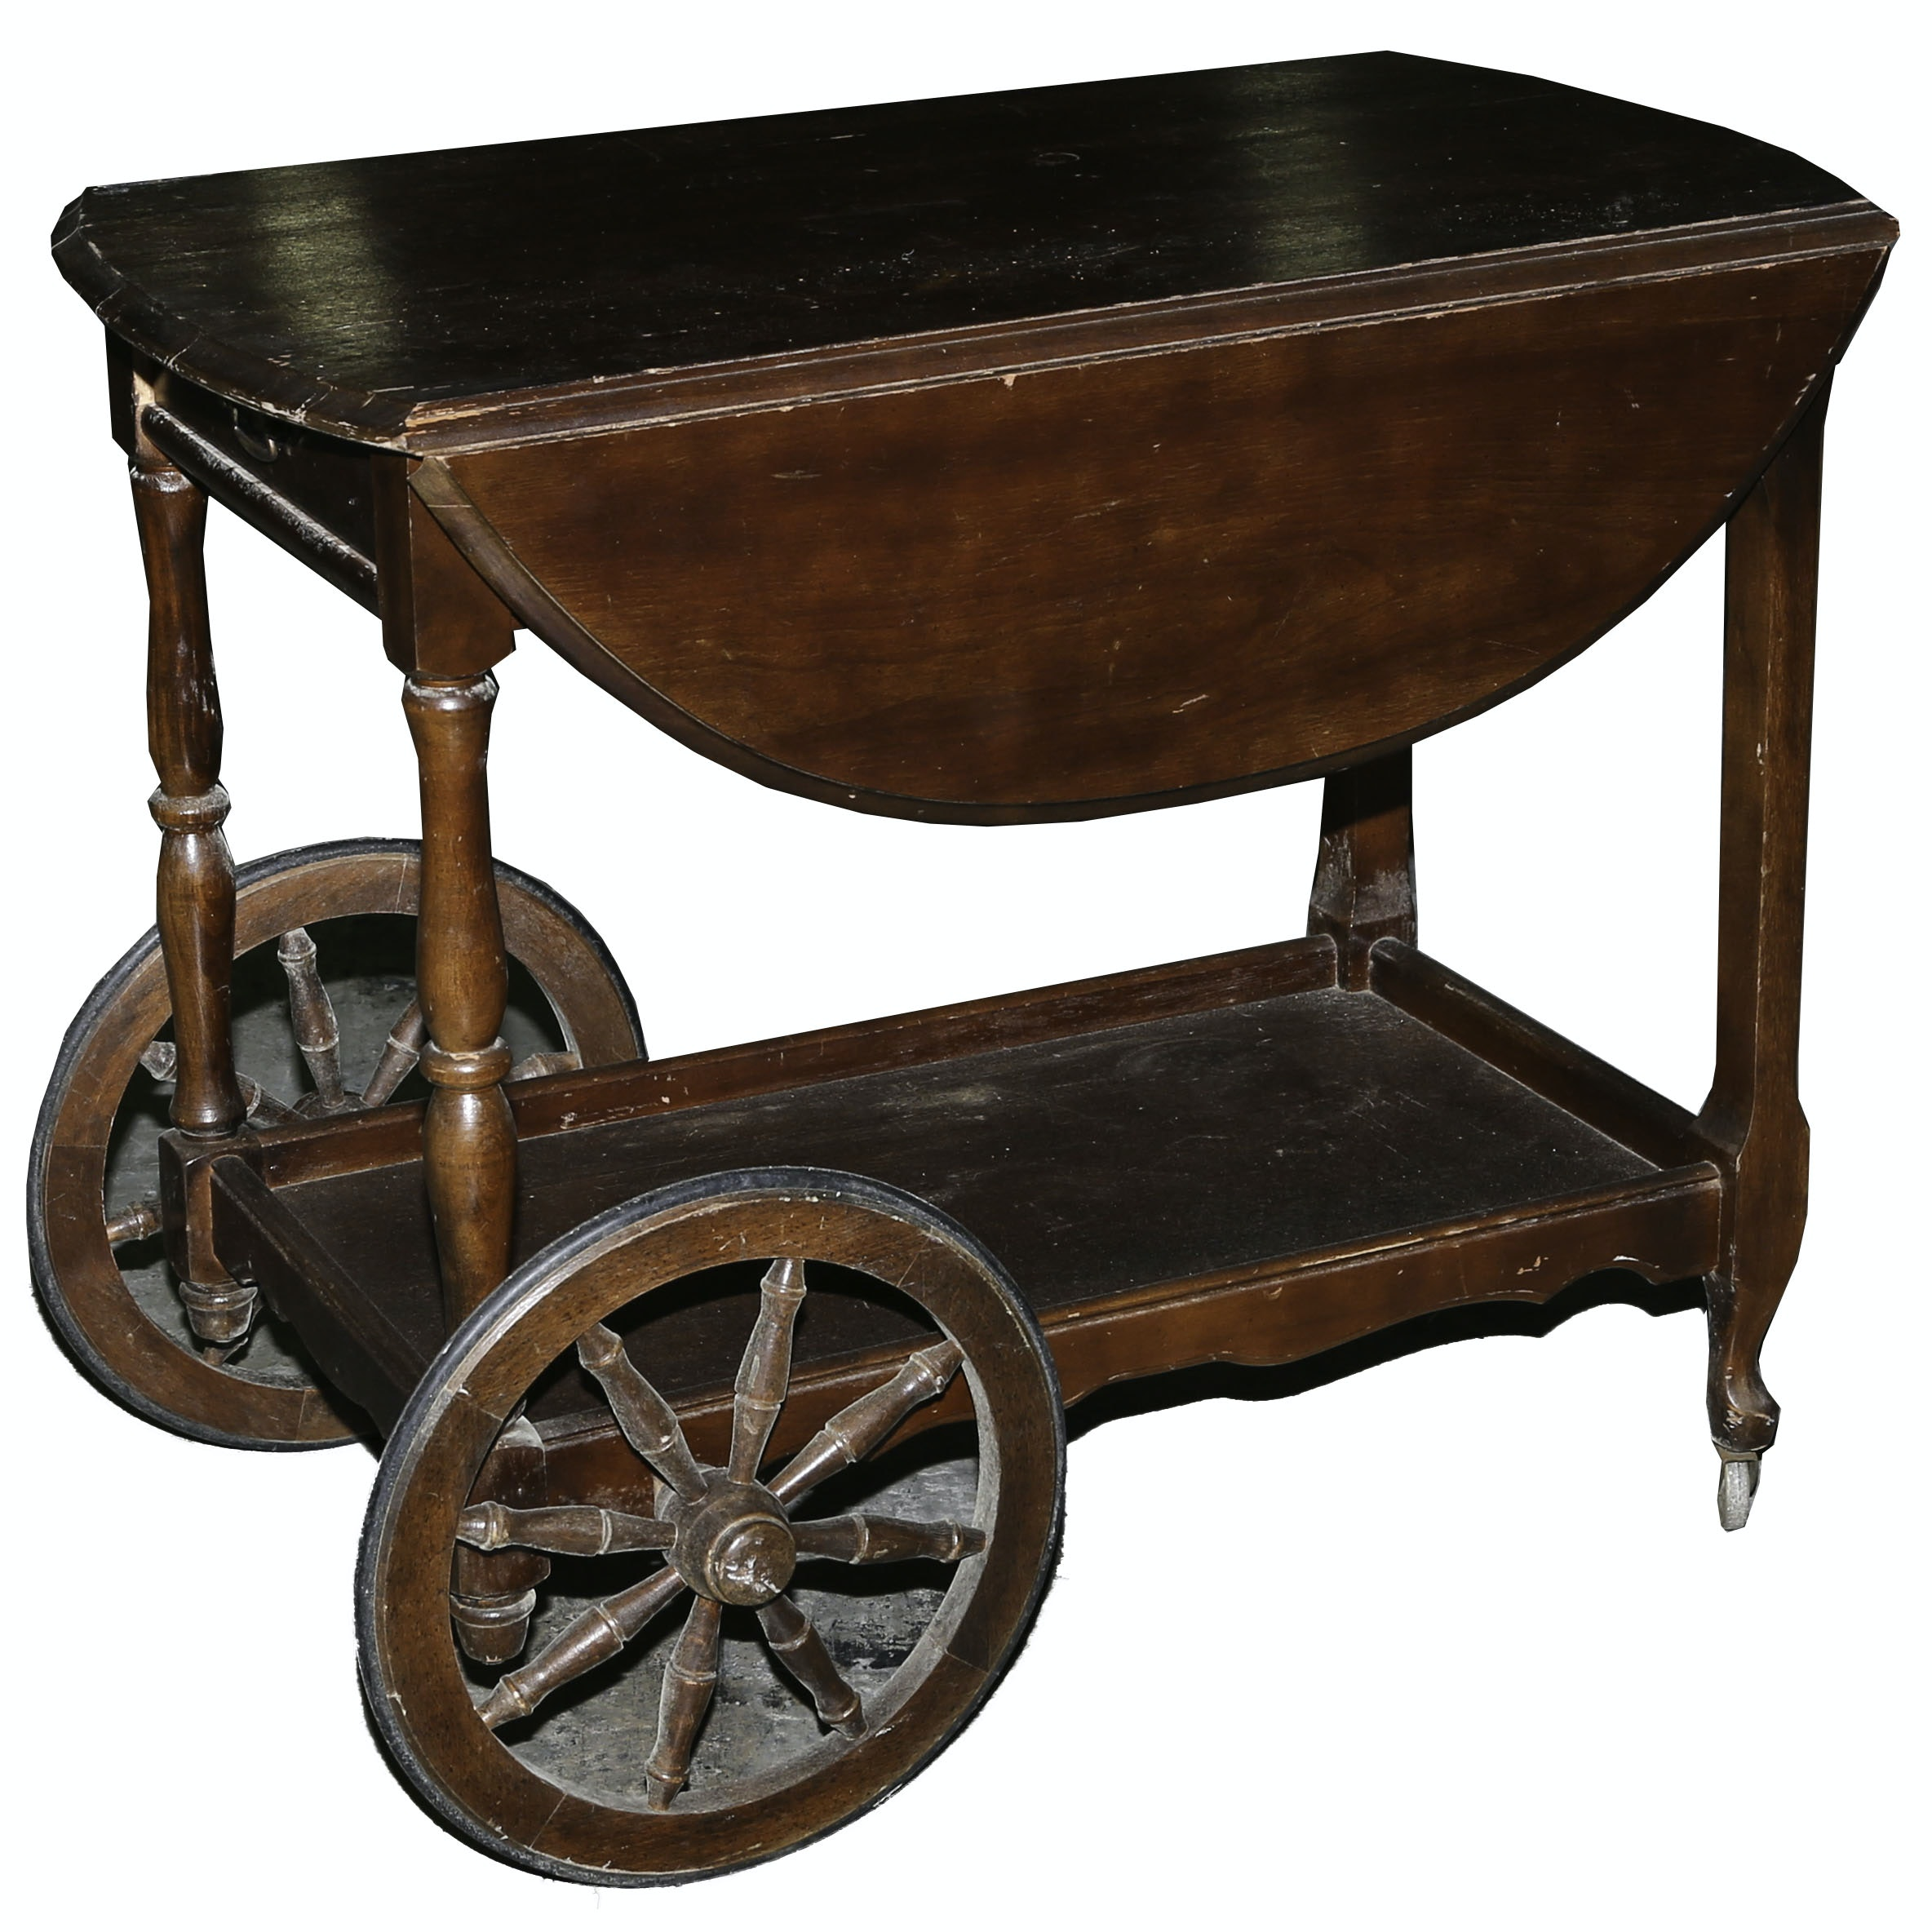 Vintage Drop-Leaf Tea Cart